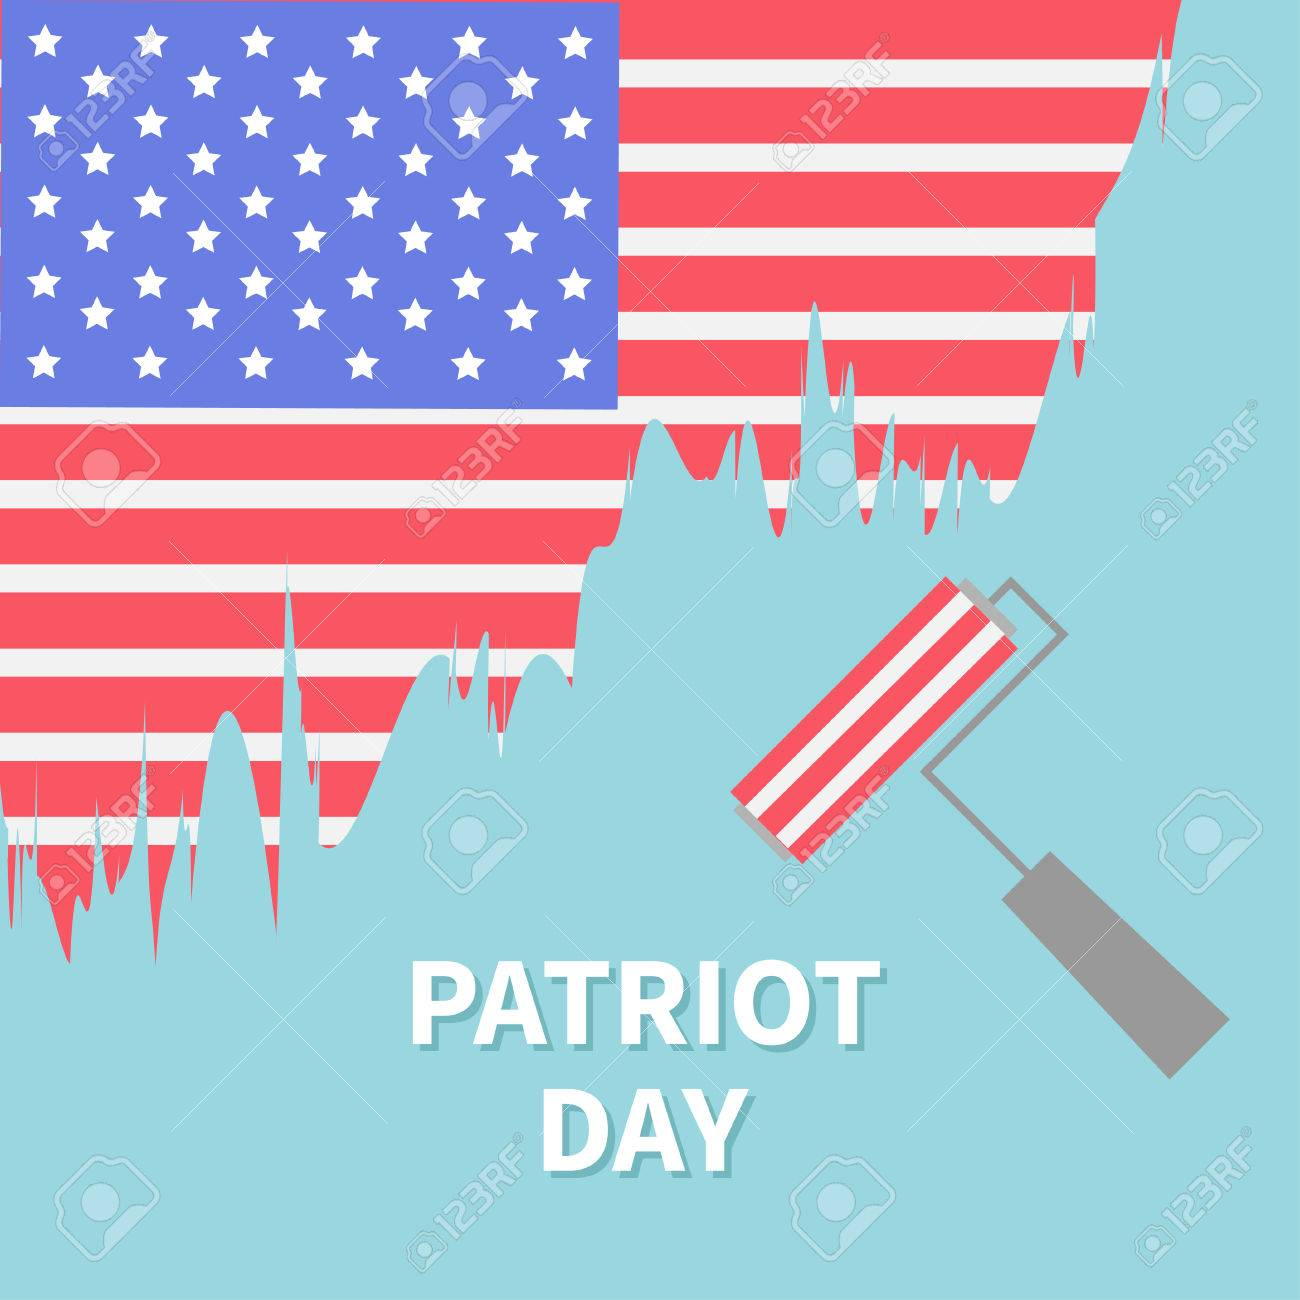 paint roller brush star and strip flag patriot day flat design paint roller brush star and strip flag patriot day flat design stock vector 43961588